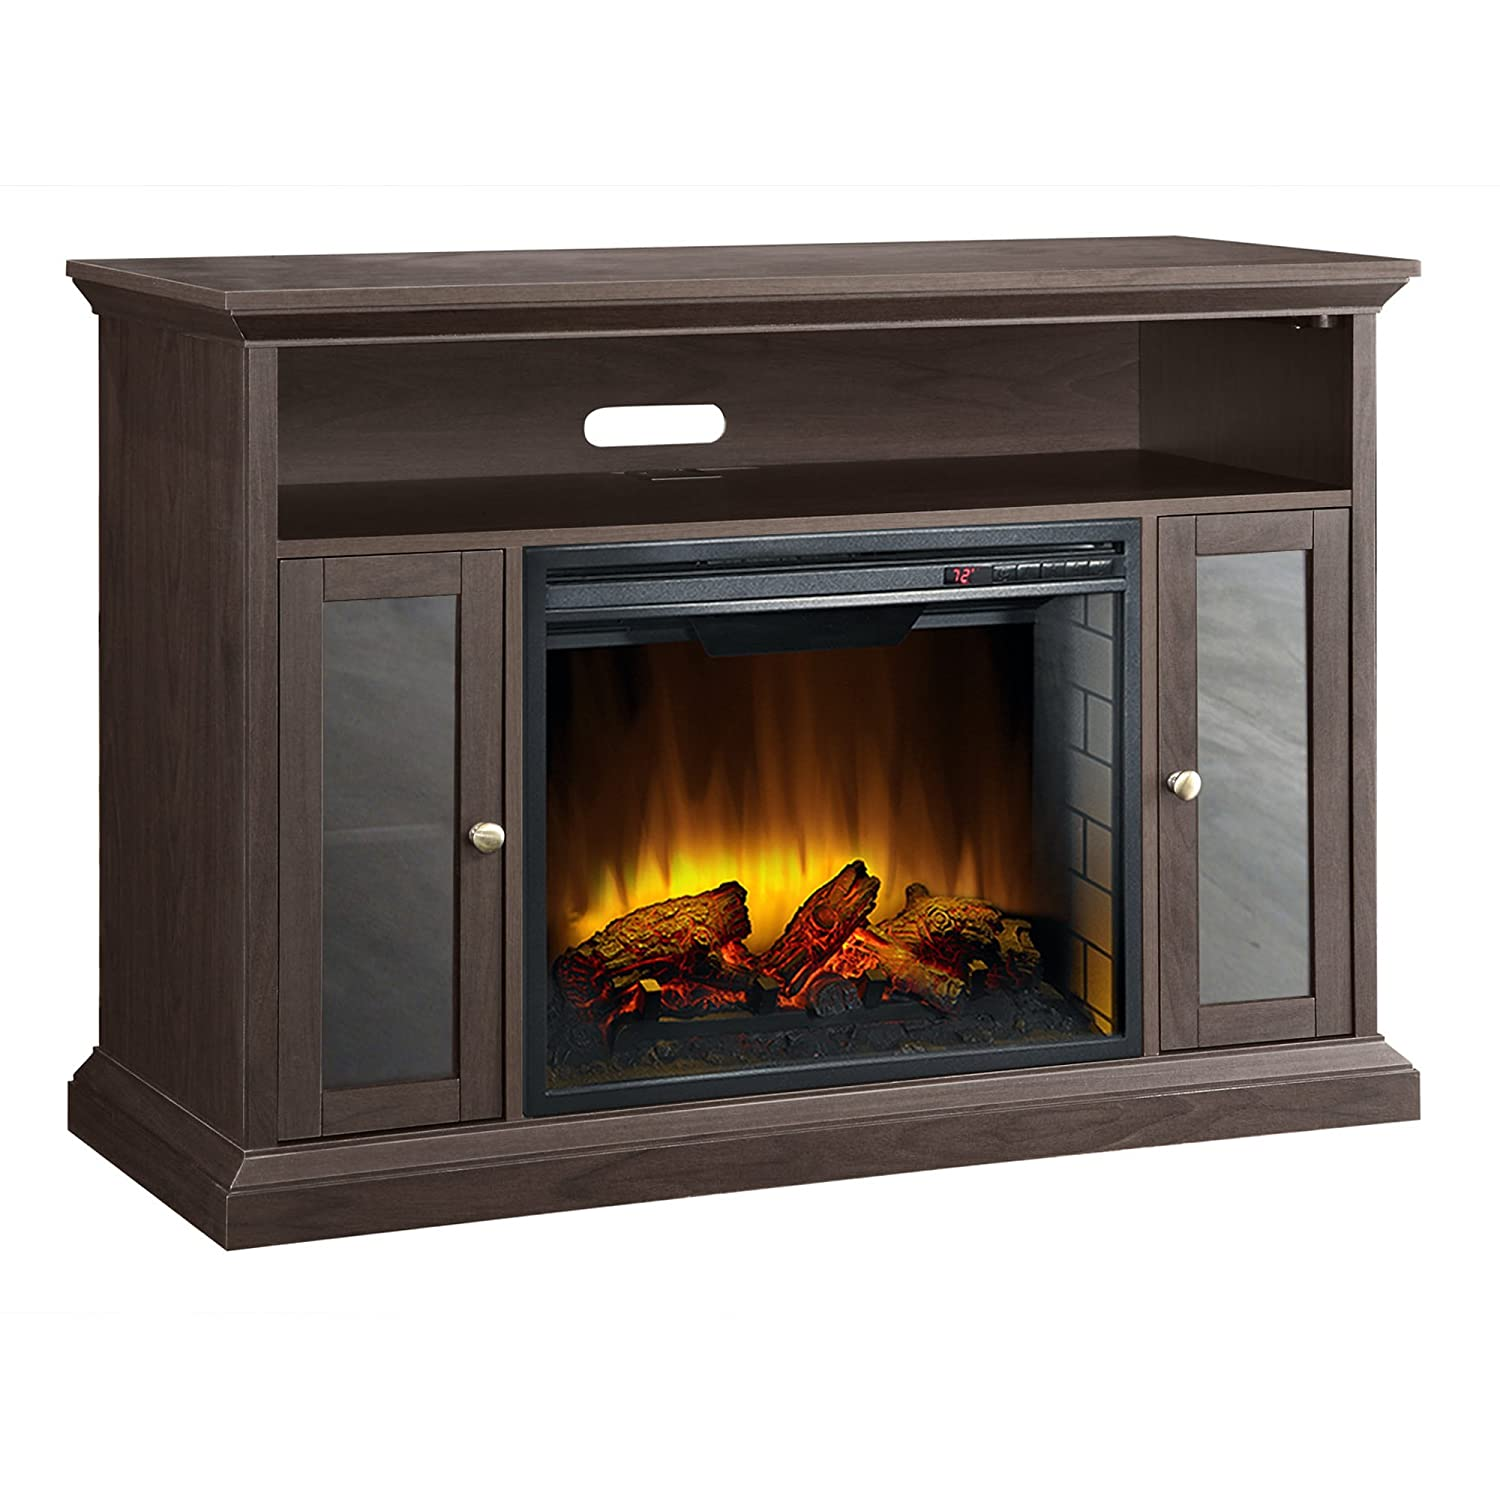 air installation prevent black bi pleasant suitable bay doors fireplace hearth prefabricated for the glacier loss with fold cool